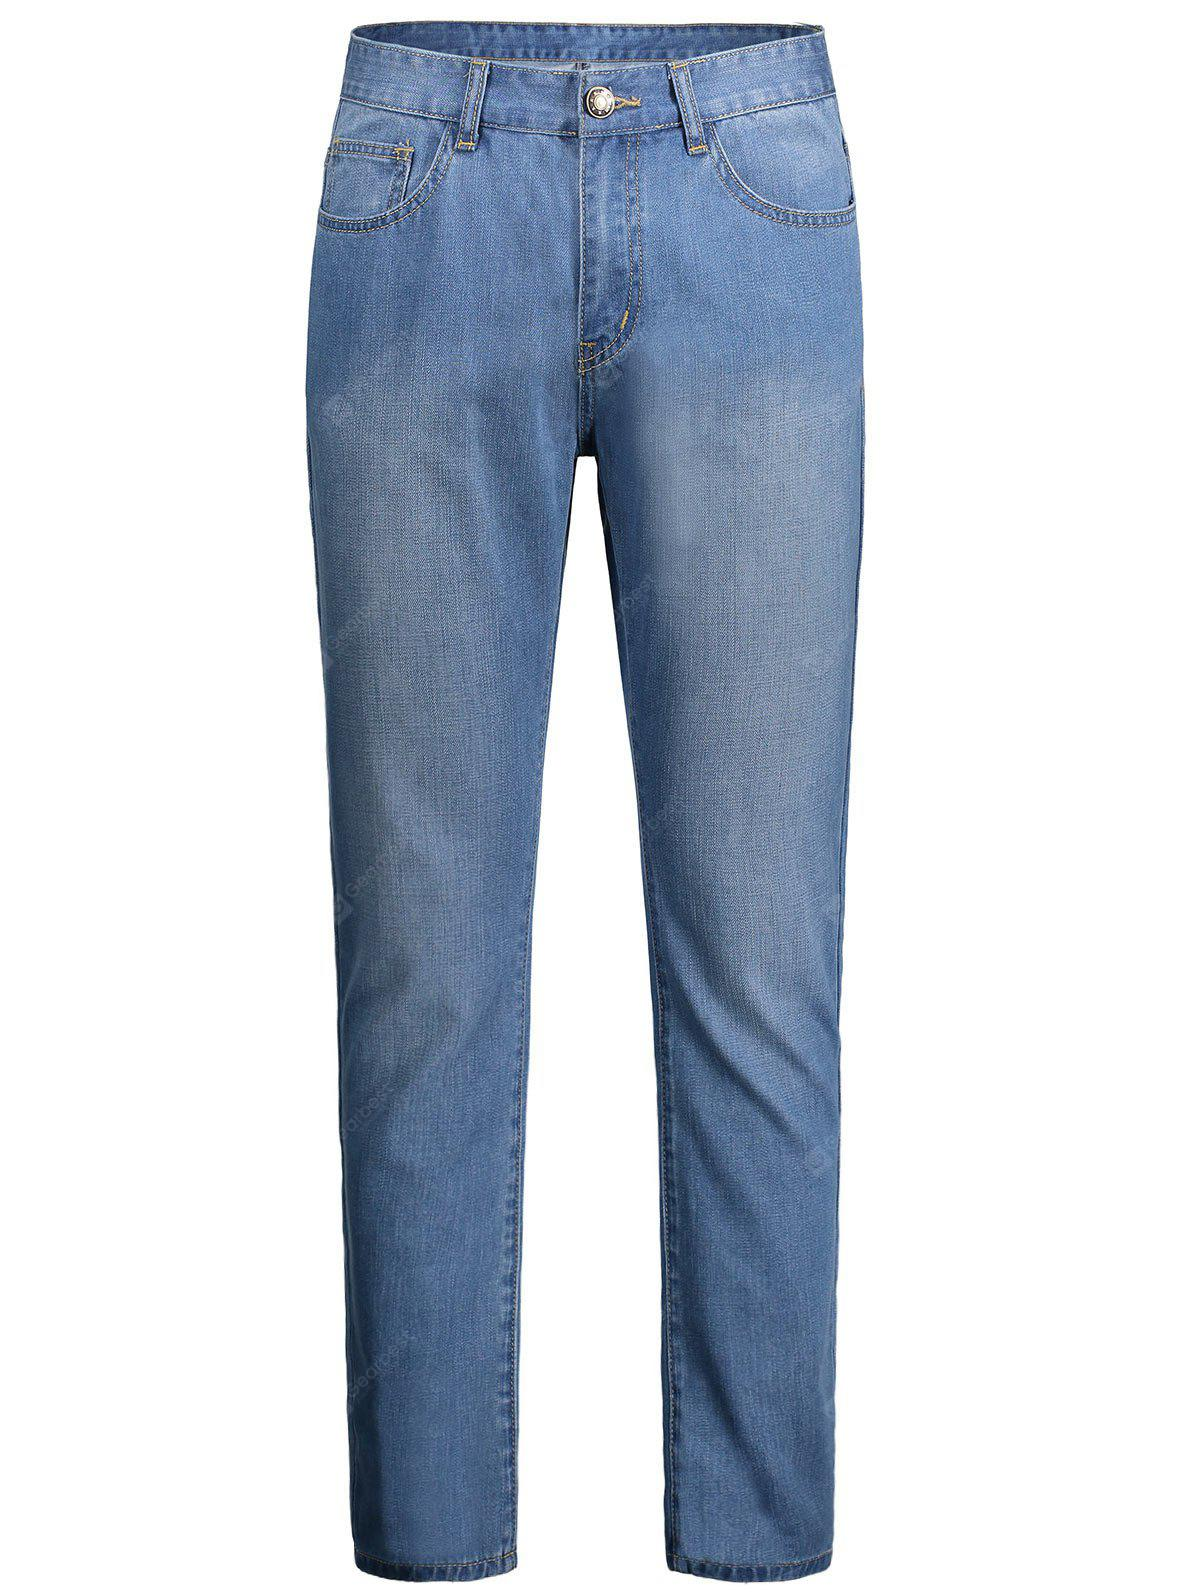 Fade Straight Fit Tall Jeans